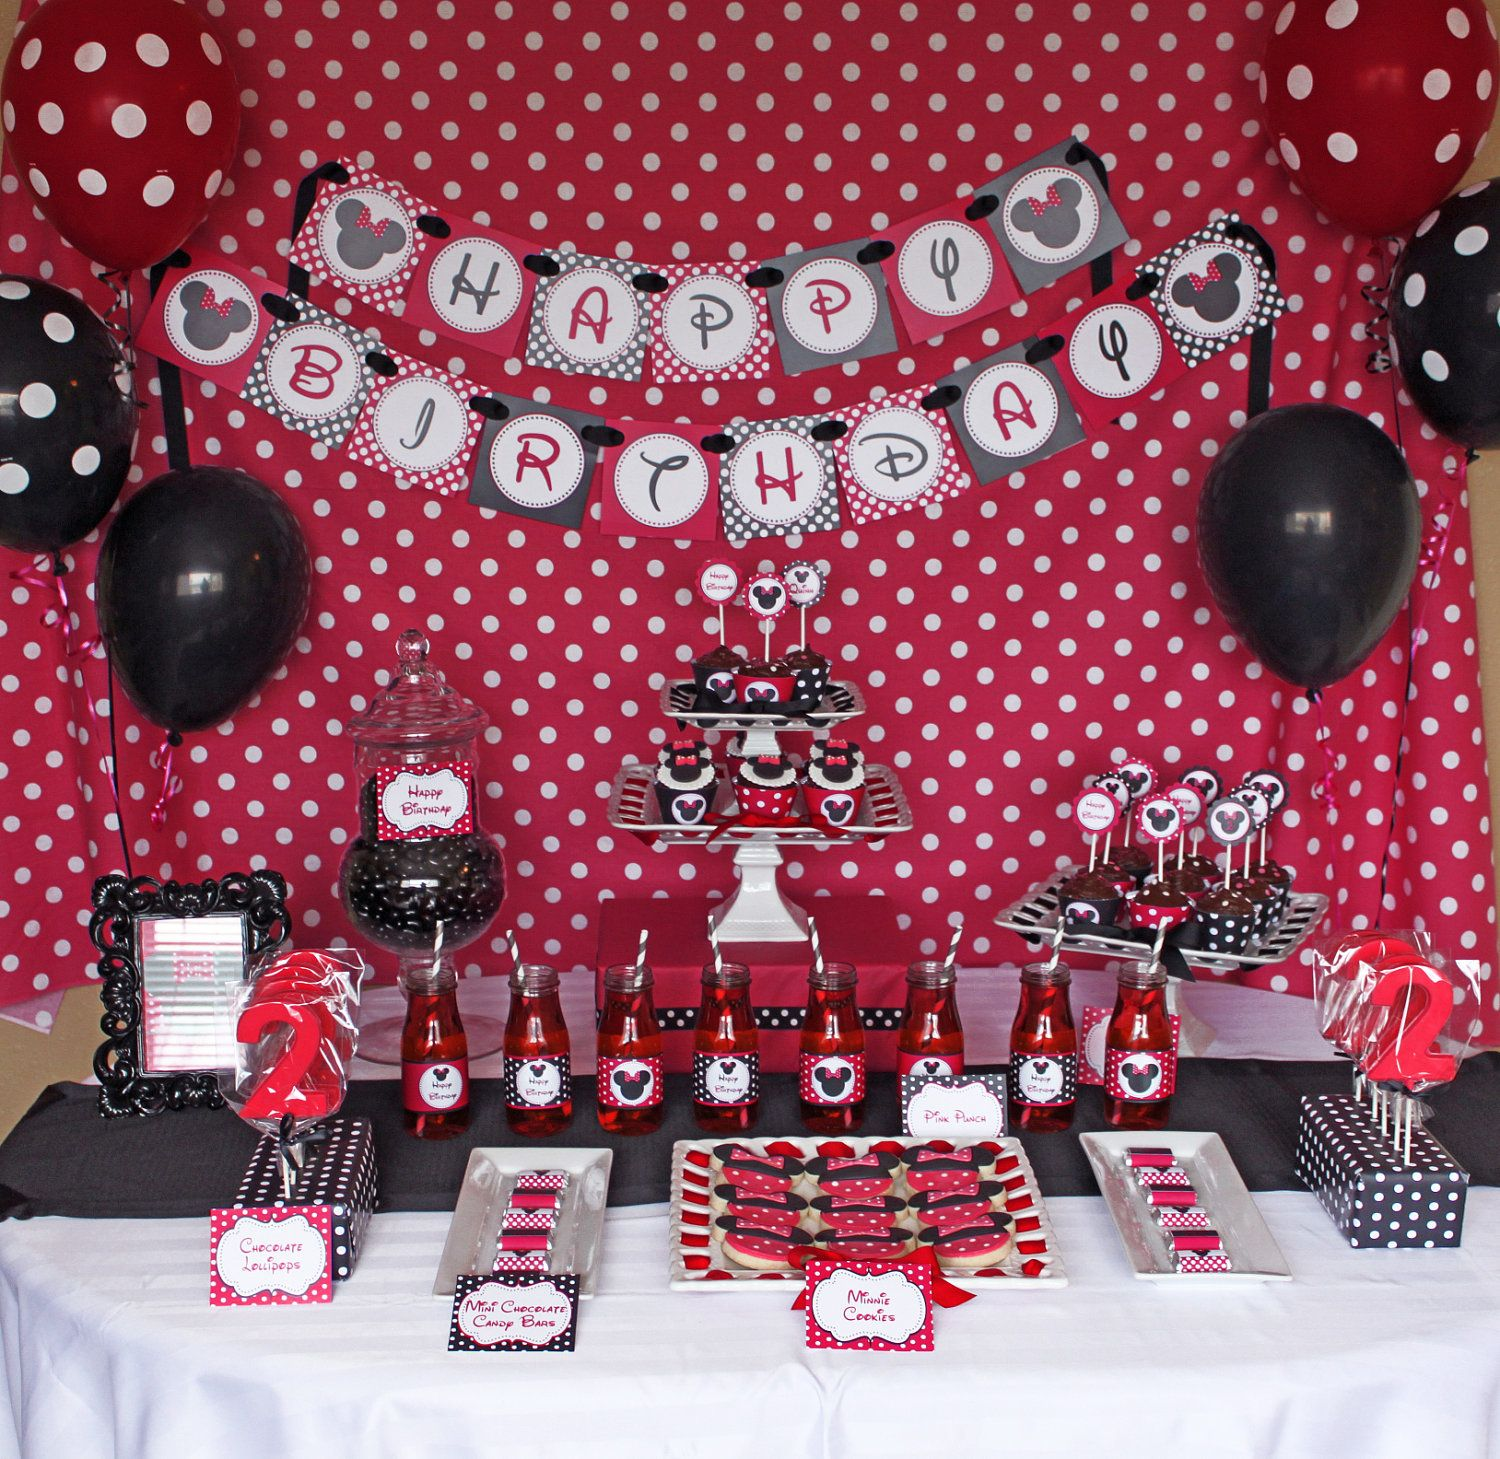 Minnie Mouse First Birthday Party Via Little Wish Parties: DIY Minnie Mouse Red Deluxe PRINTABLE Birthday Party